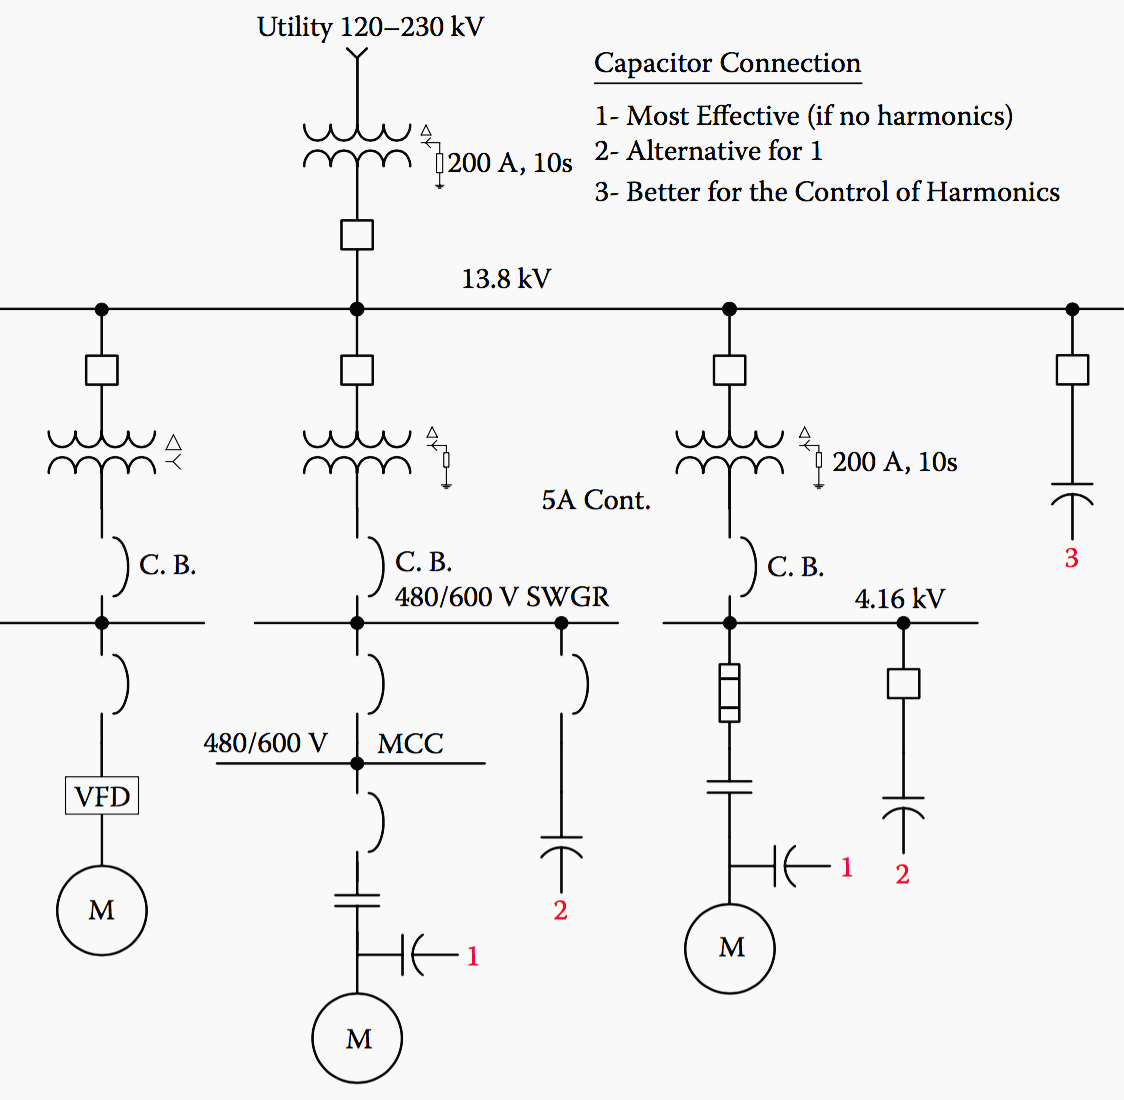 single line diagram of power distribution 1970 chevy truck ignition wiring how bad harmonics influence the work motors and